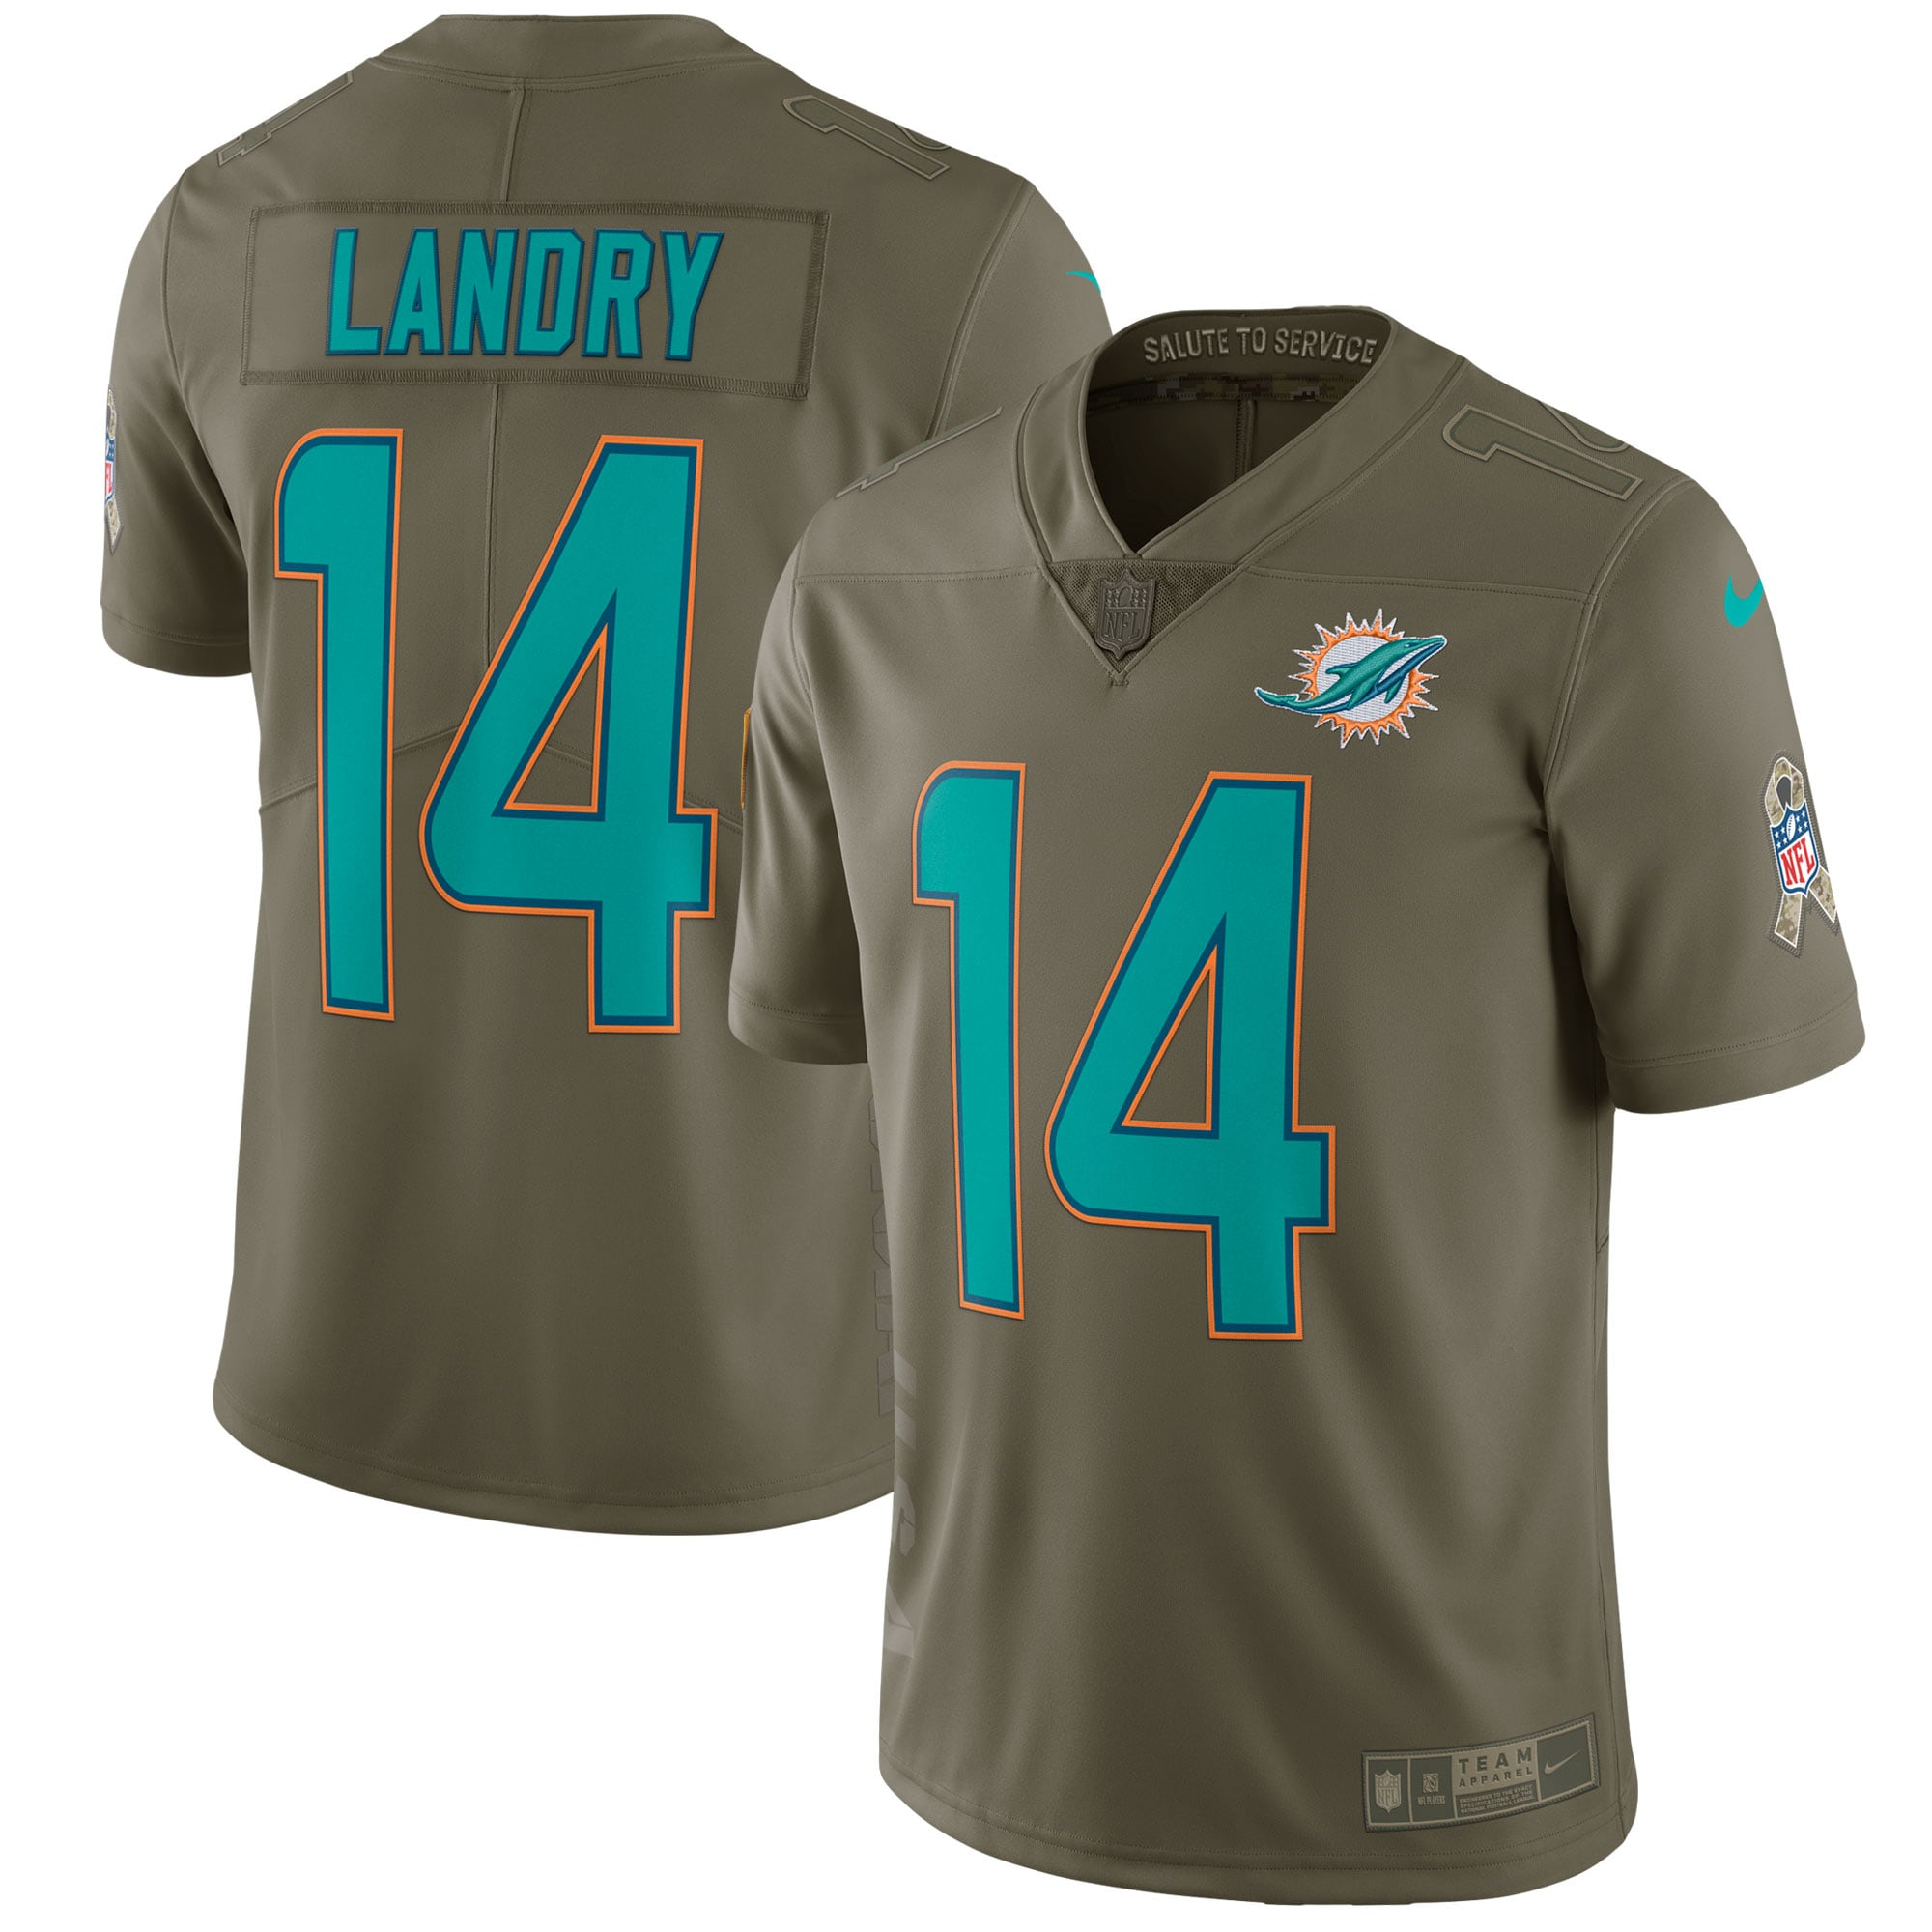 Jarvis Landry Miami Dolphins Nike Salute To Service Limited Jersey - Olive